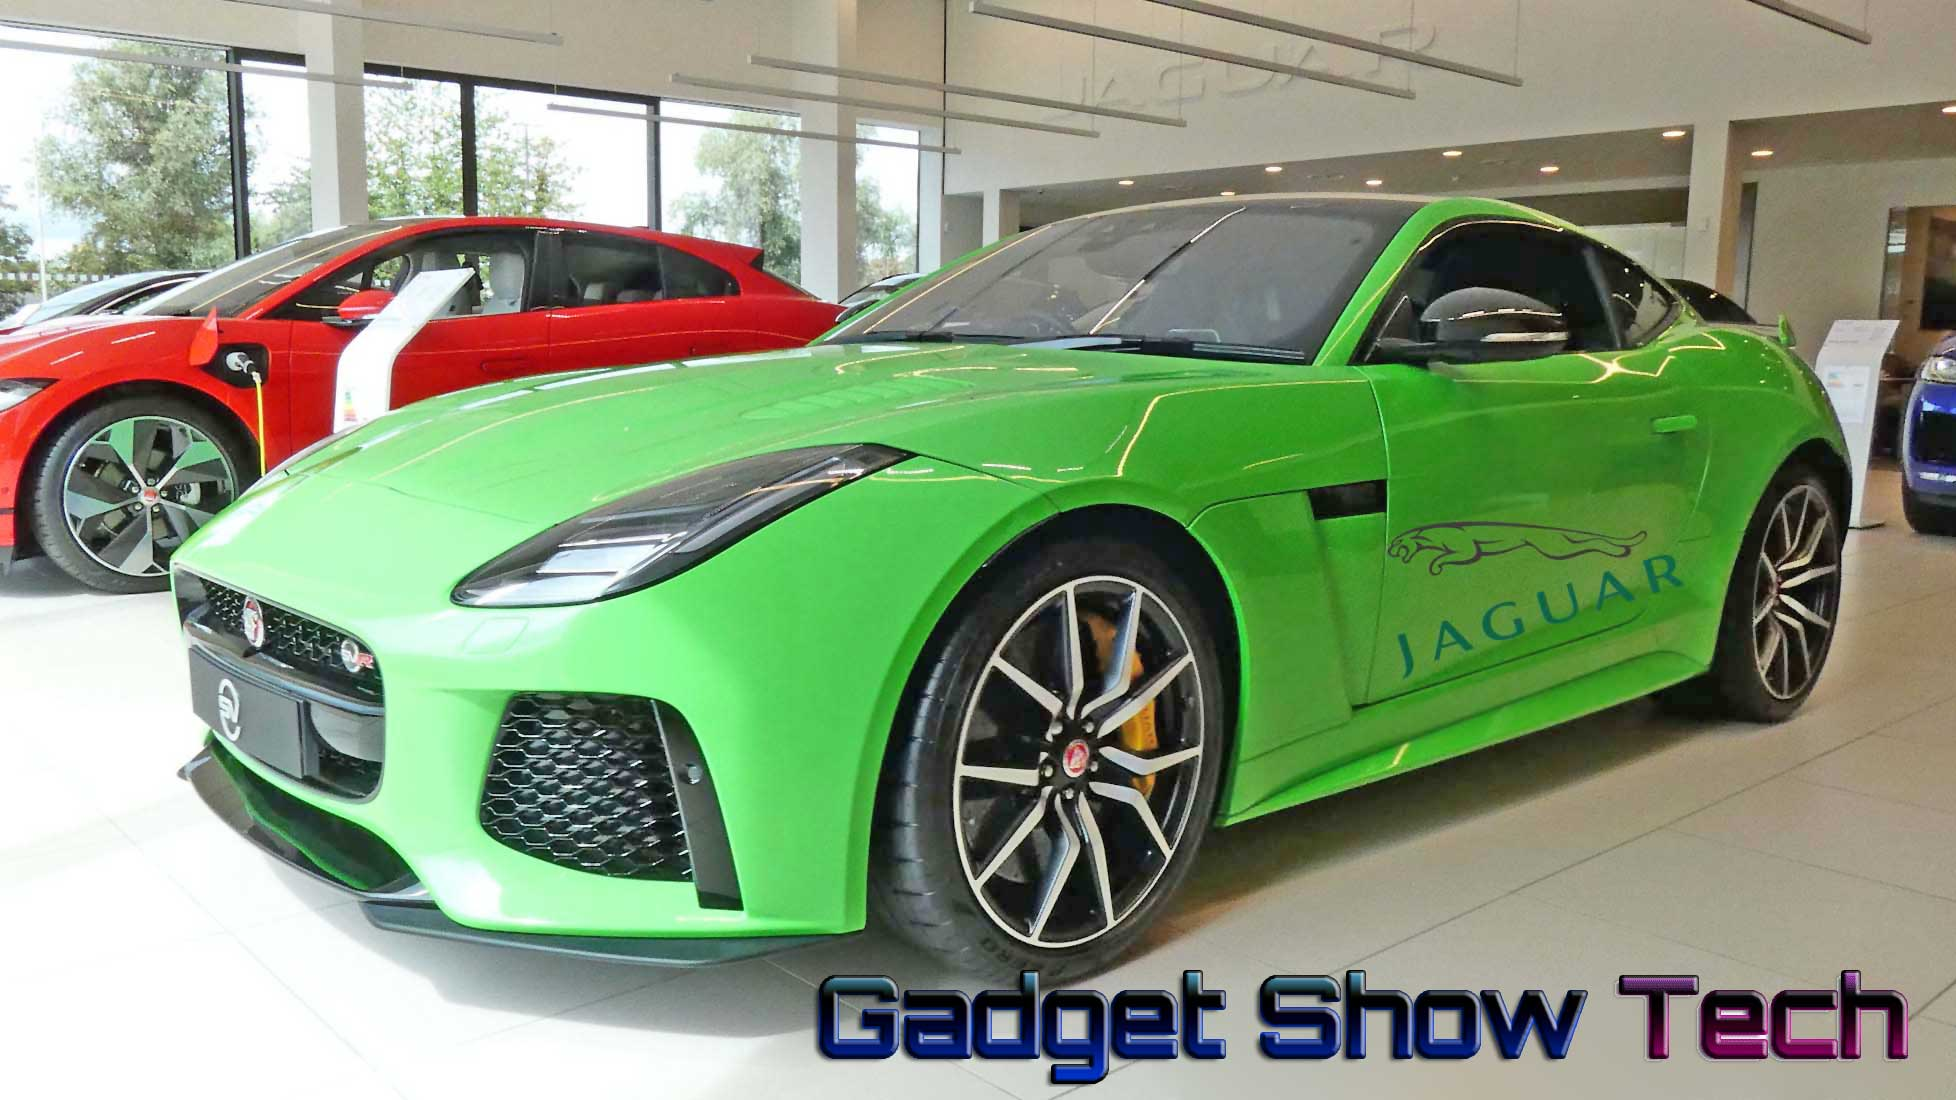 Jaguar Boss warns if parts are late jobs could be lost